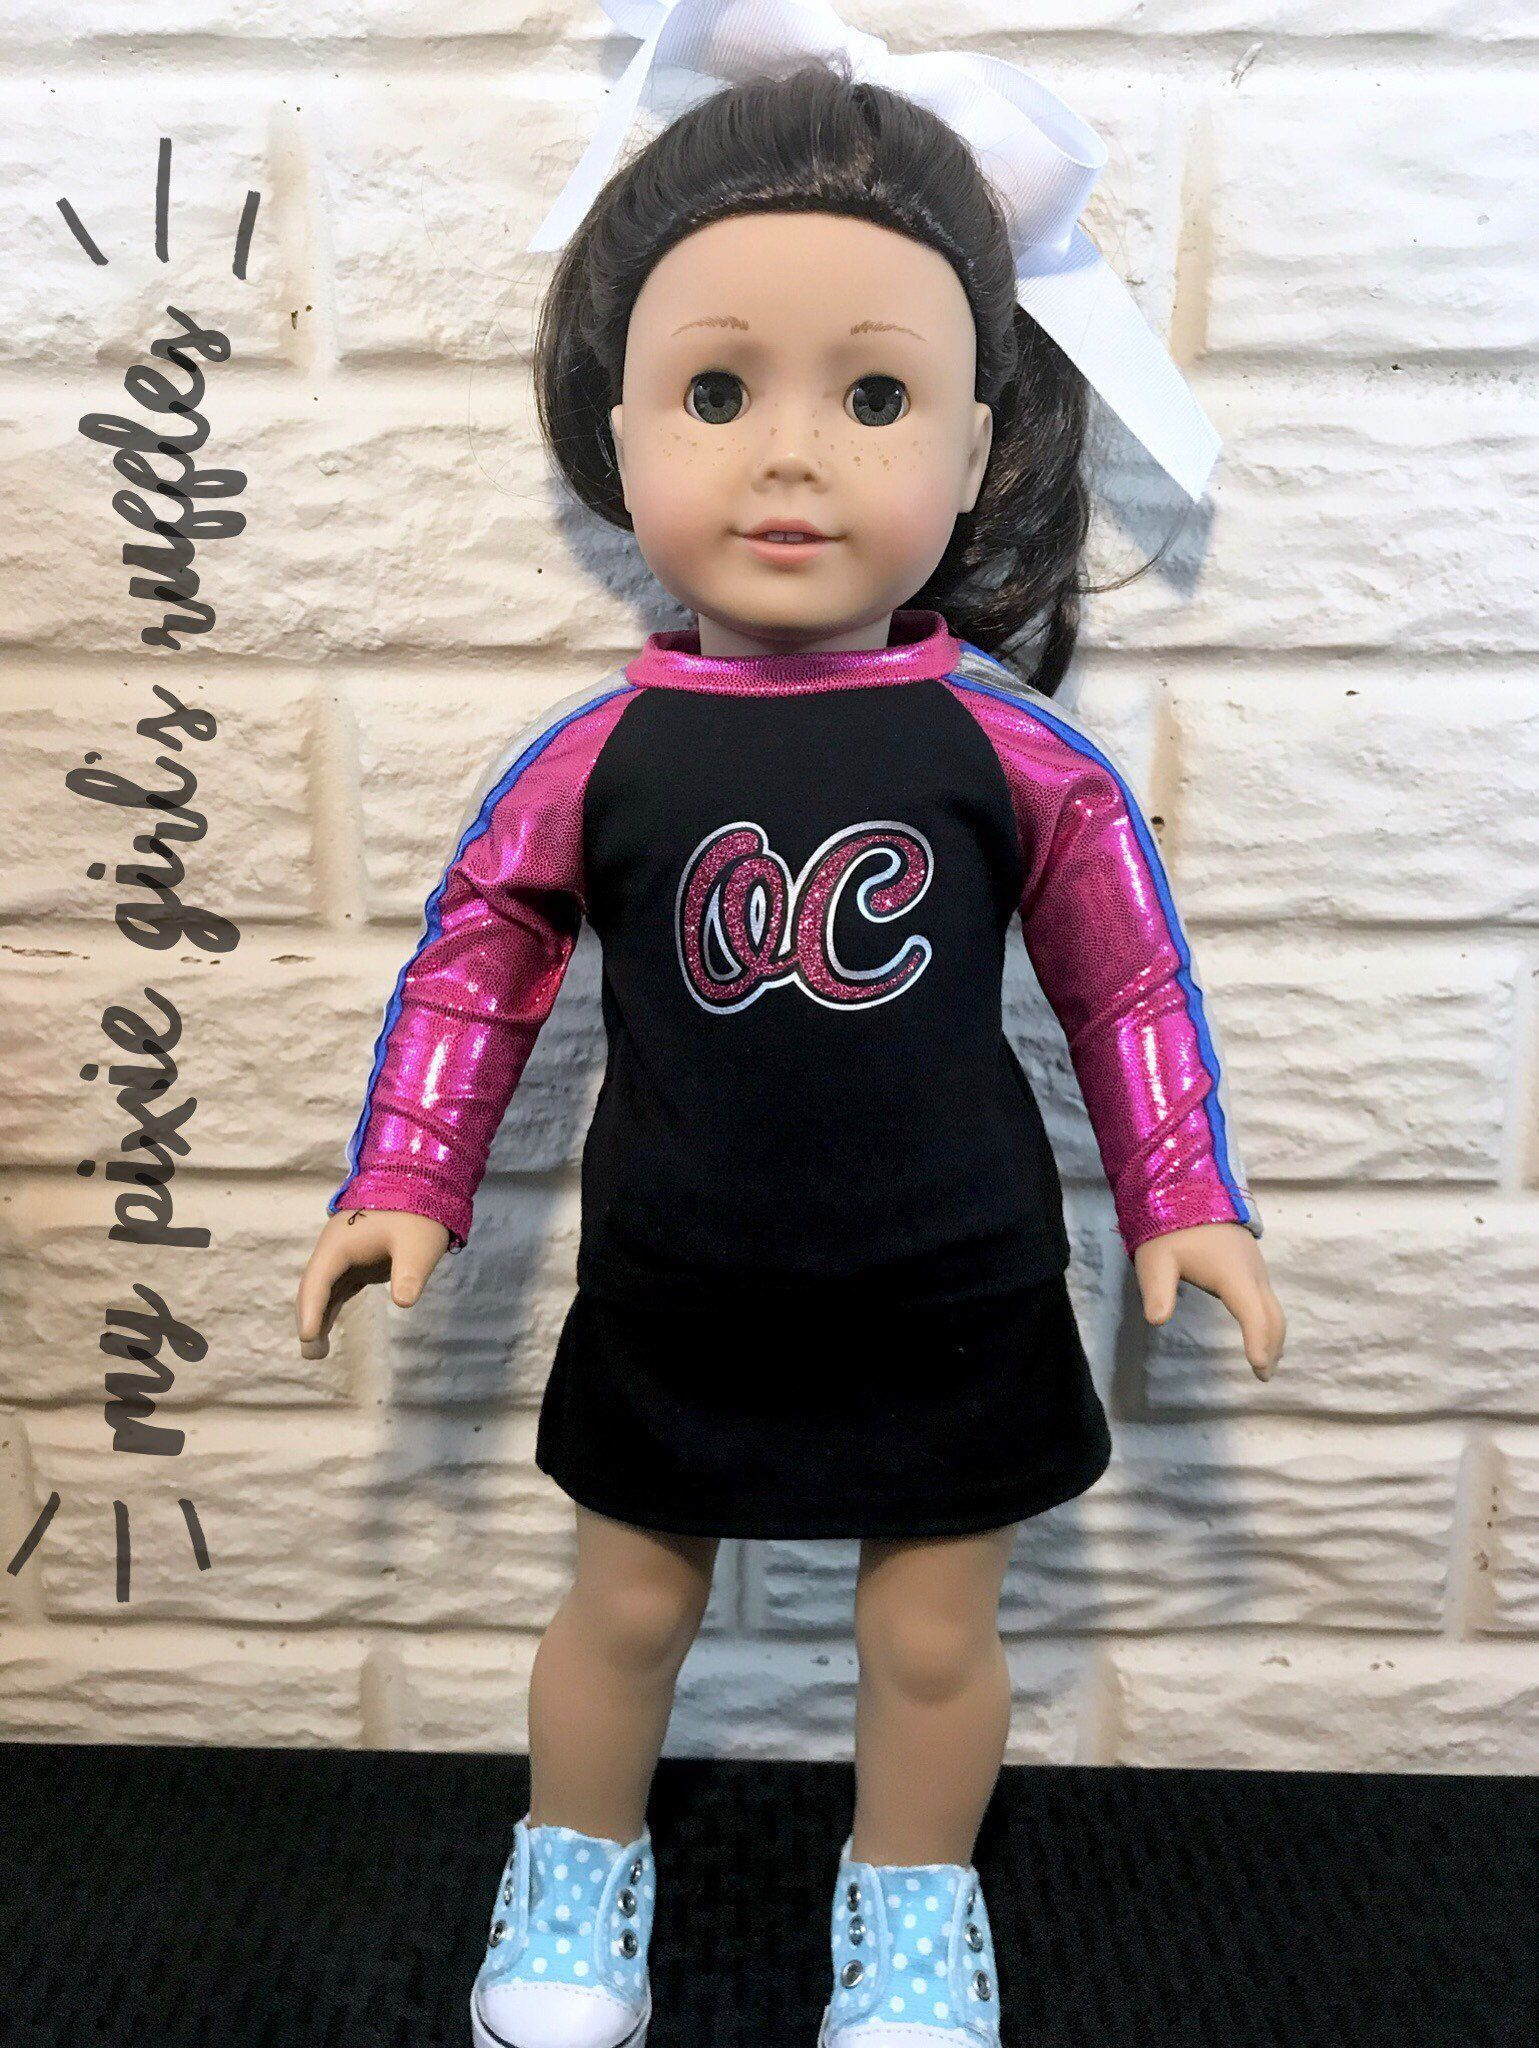 Excited to share this item from my #etsy shop: 18 Inch or 15 Inch Dolly Black/Pink/Blue and Silver Cheerleader Uniform #dollclothes #skirt #18inchcheerleaderclothes Excited to share this item from my #etsy shop: 18 Inch or 15 Inch Dolly Black/Pink/Blue and Silver Cheerleader Uniform #dollclothes #skirt #18inchcheerleaderclothes Excited to share this item from my #etsy shop: 18 Inch or 15 Inch Dolly Black/Pink/Blue and Silver Cheerleader Uniform #dollclothes #skirt #18inchcheerleaderclothes Excit #18inchcheerleaderclothes